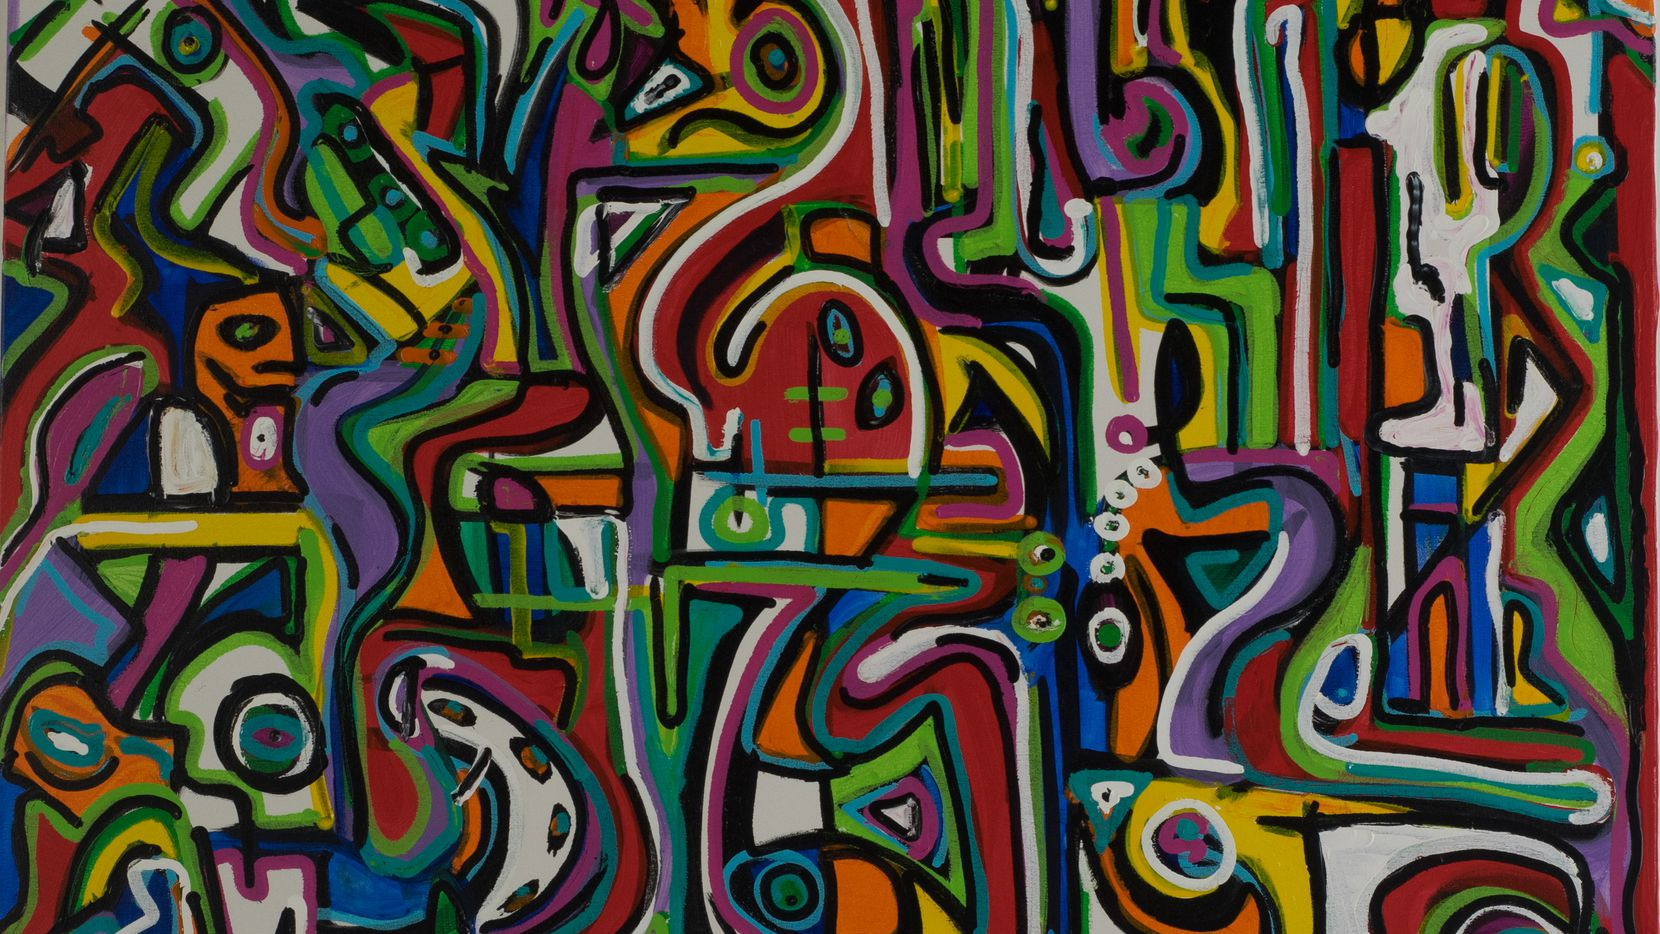 An untitled example of Preston Pannek's geometric painting style.